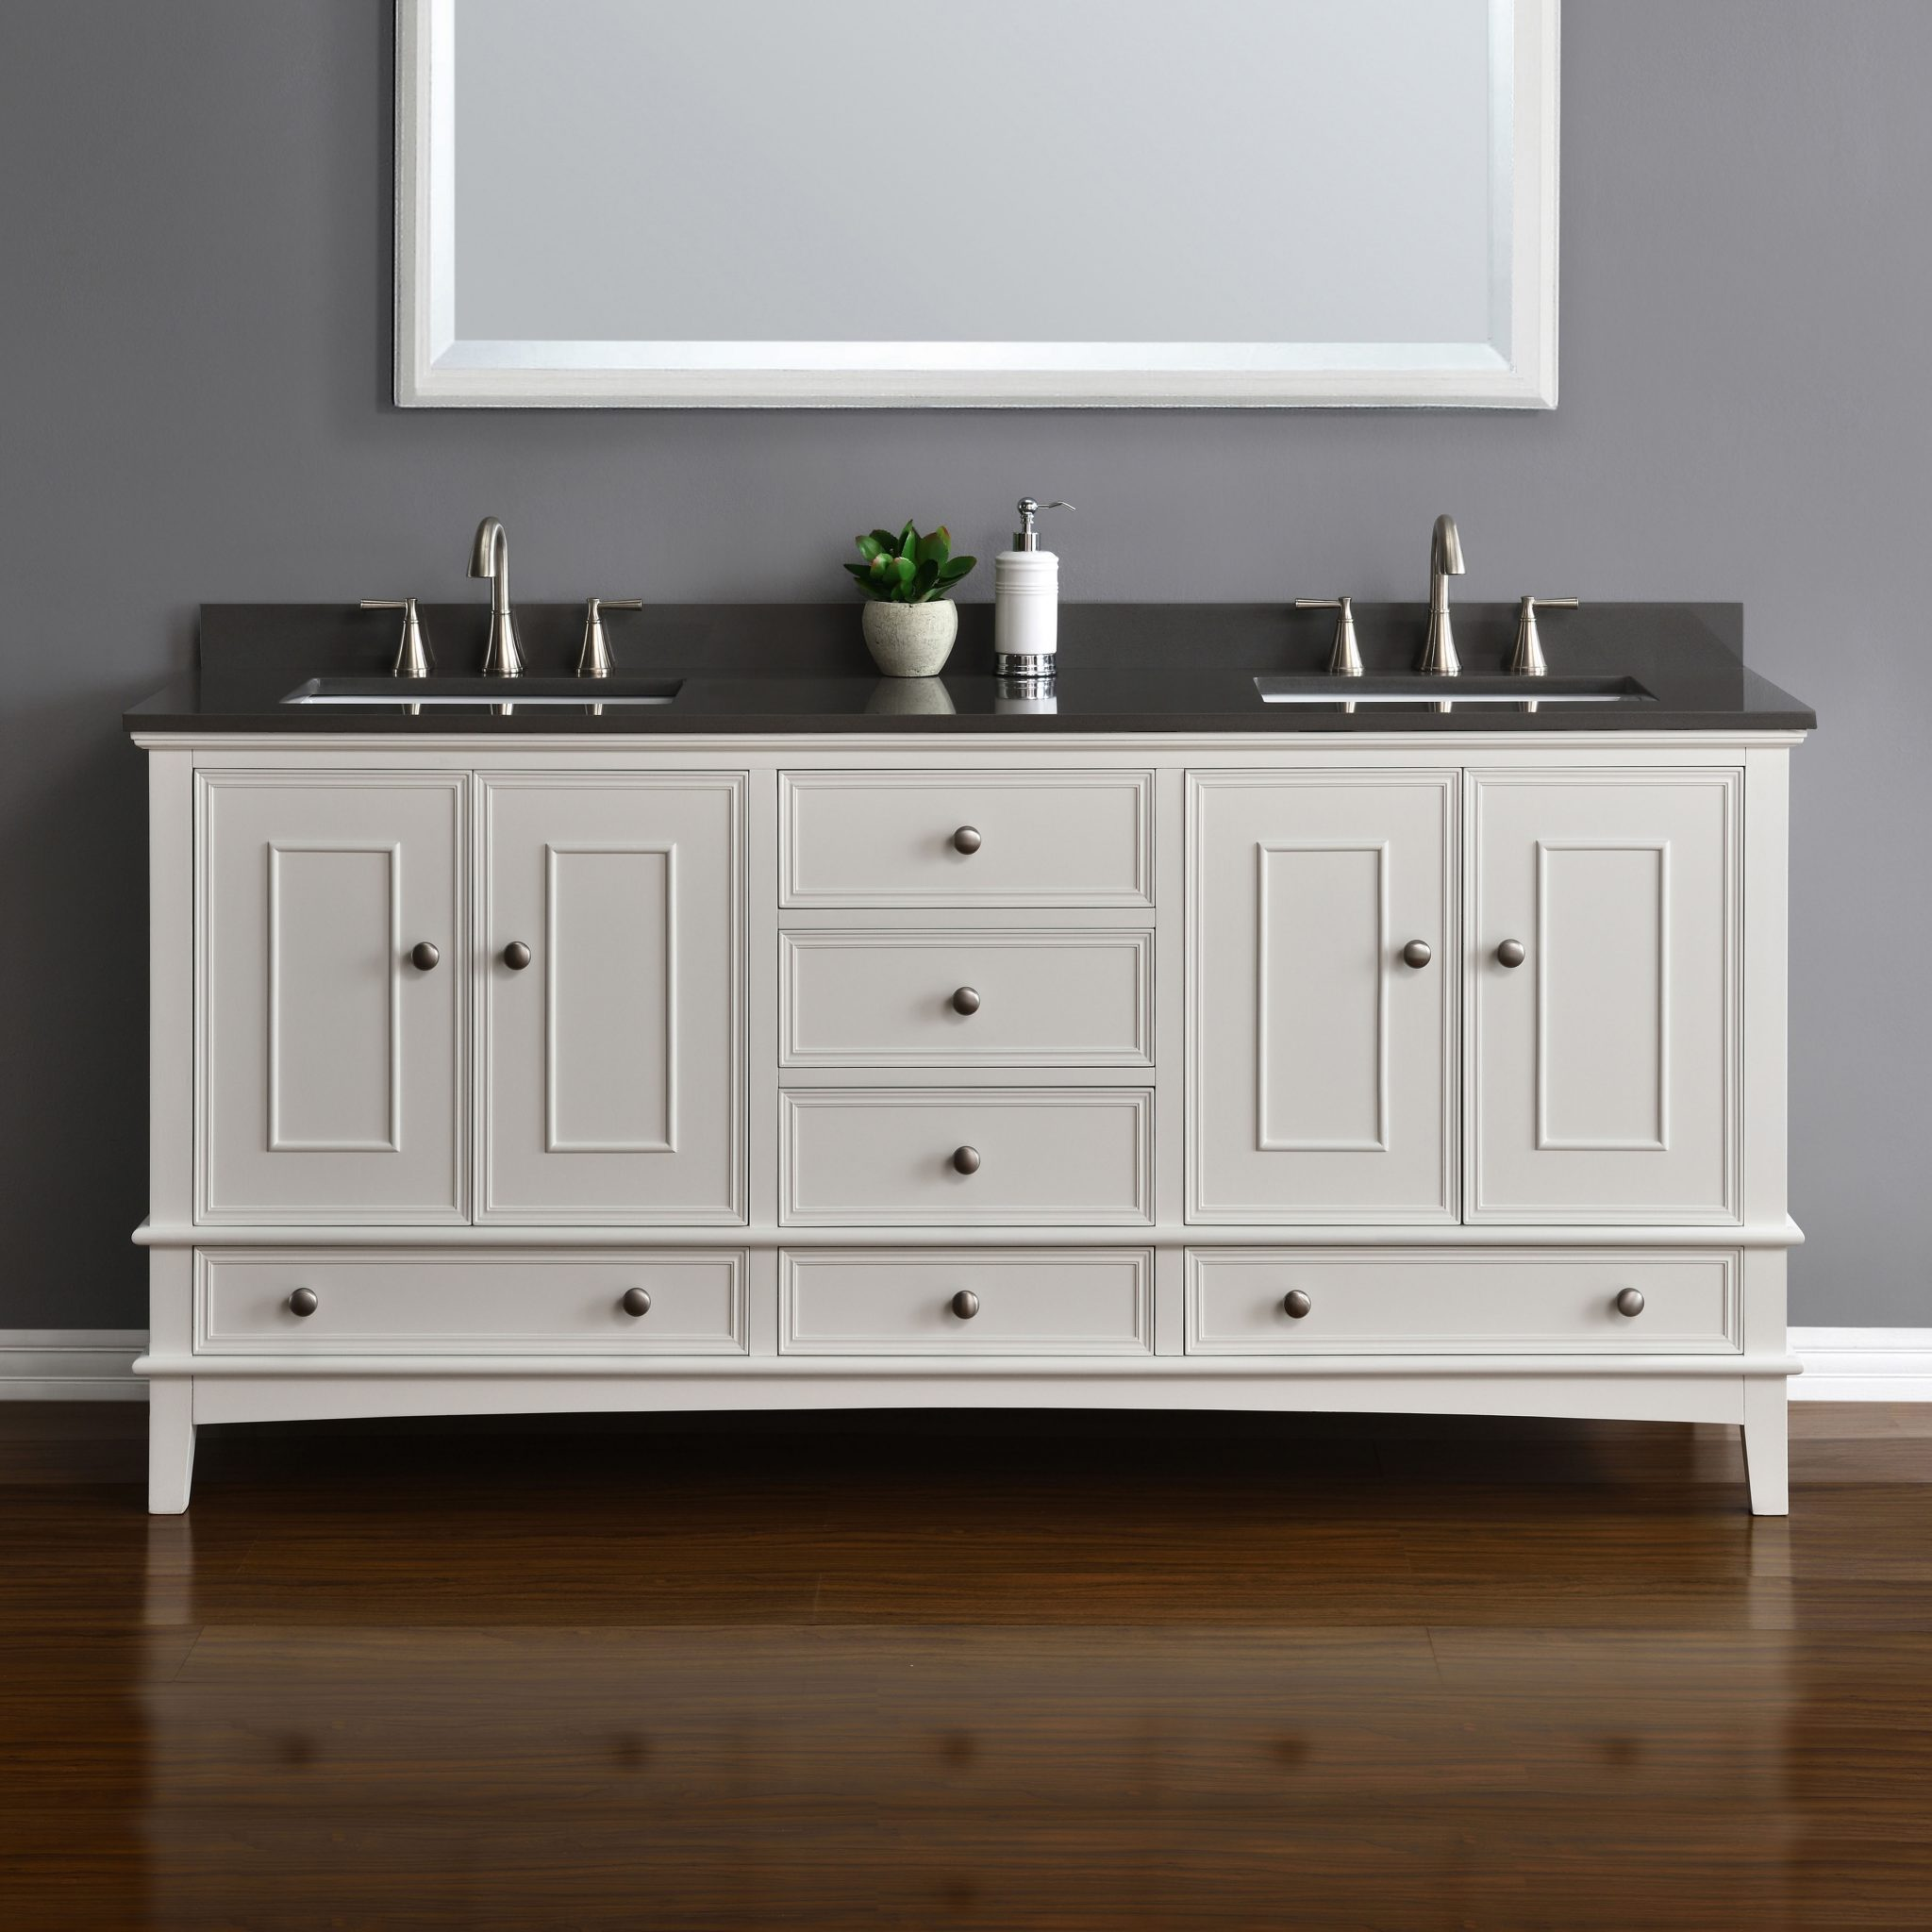 mission vanity hills camden product double dsc furniture sink